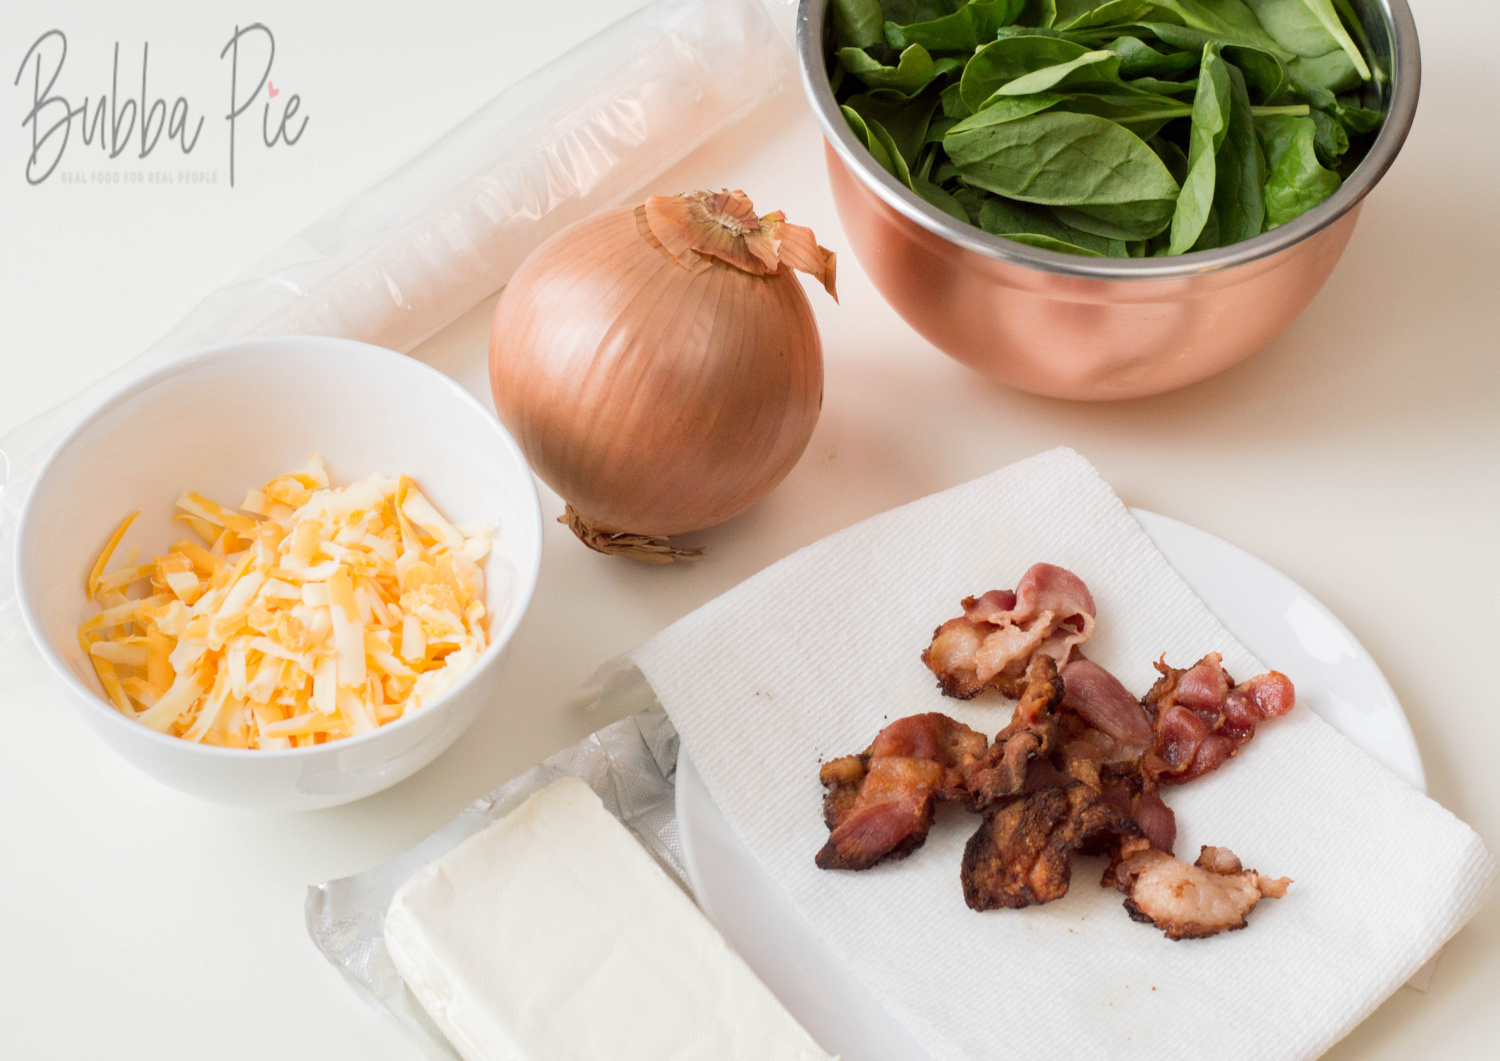 How to make Pinwheel sandwiches includes the ingredients of bacon, cheese, cream cheese, onion and spinach